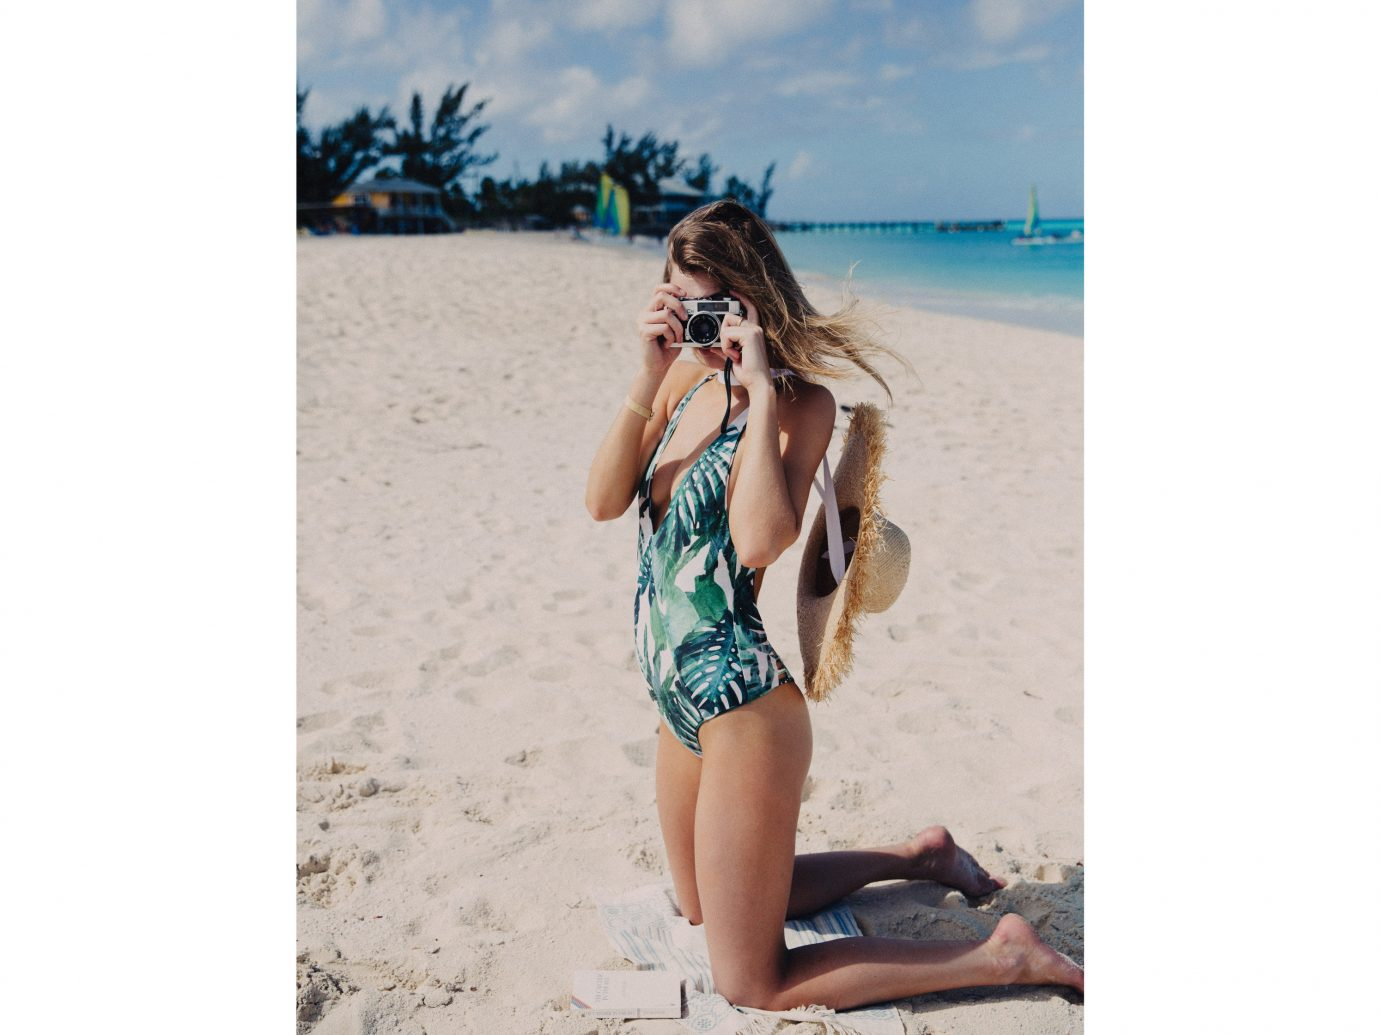 Style + Design outdoor woman Beach swimwear clothing girl person fashion model young vacation summer supermodel lady swimsuit shorts beautiful one piece swimsuit lingerie swimsuit top swimsuit bottom maillot pretty